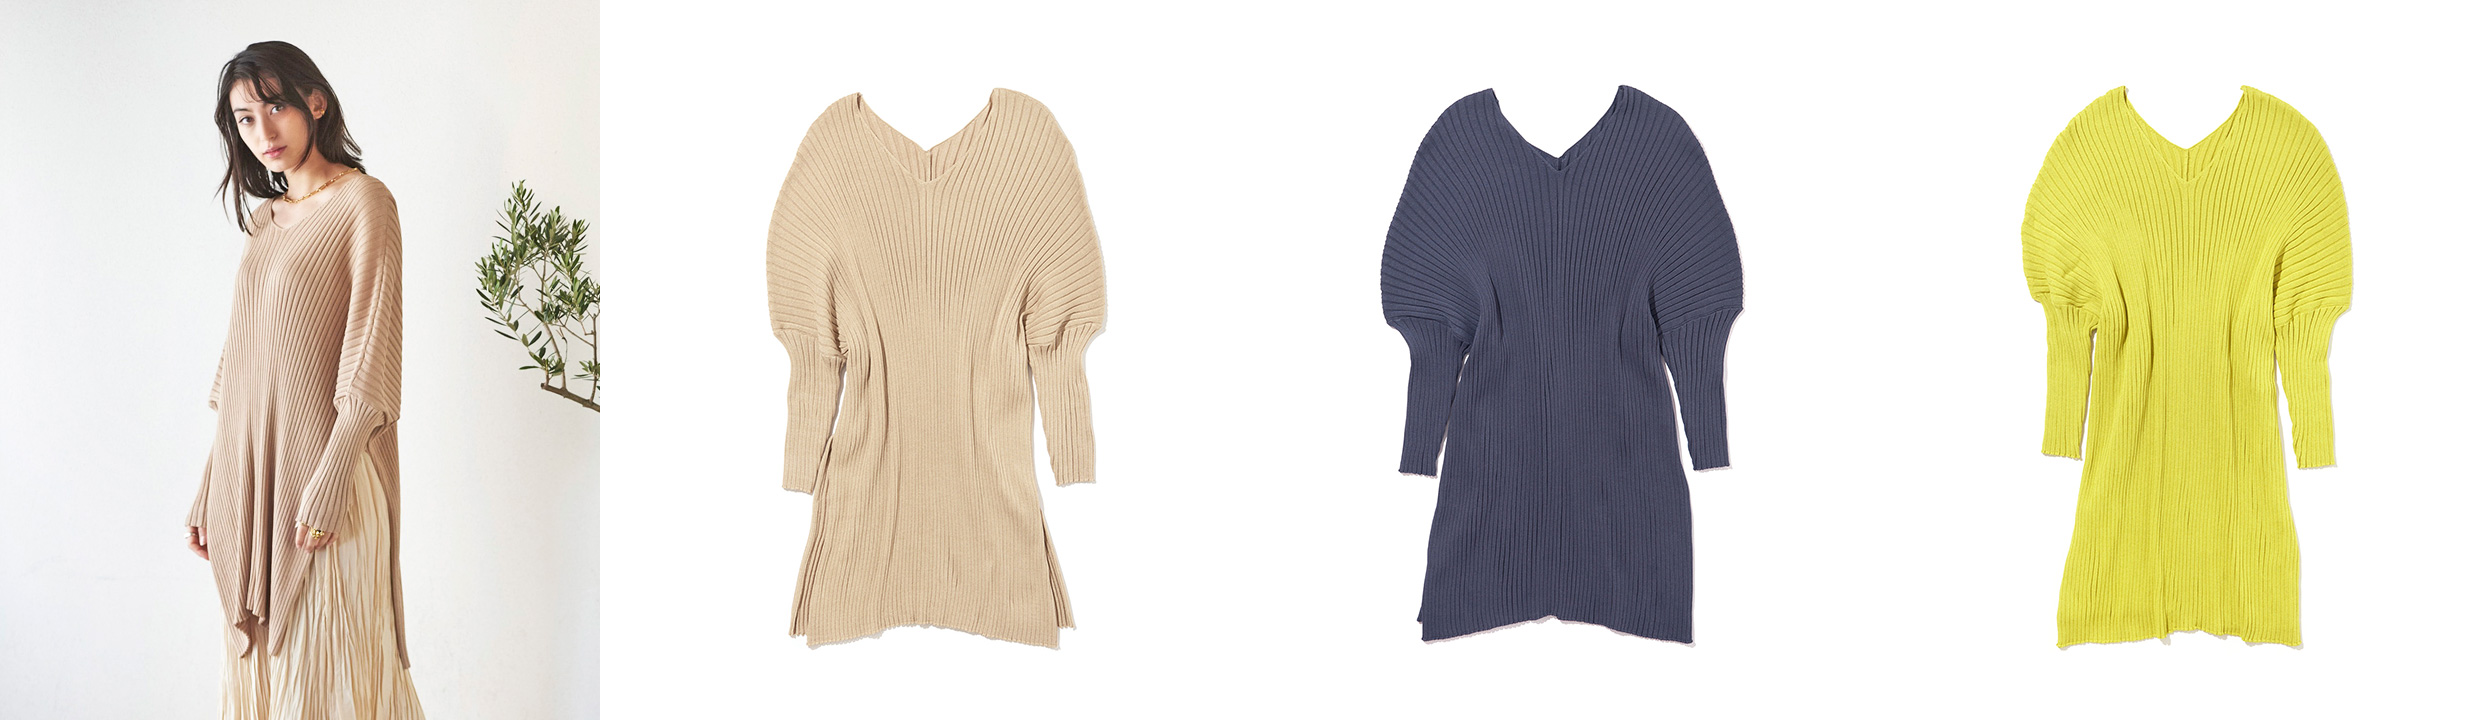 Marie Miller RIB KNIT OVER TUNIC